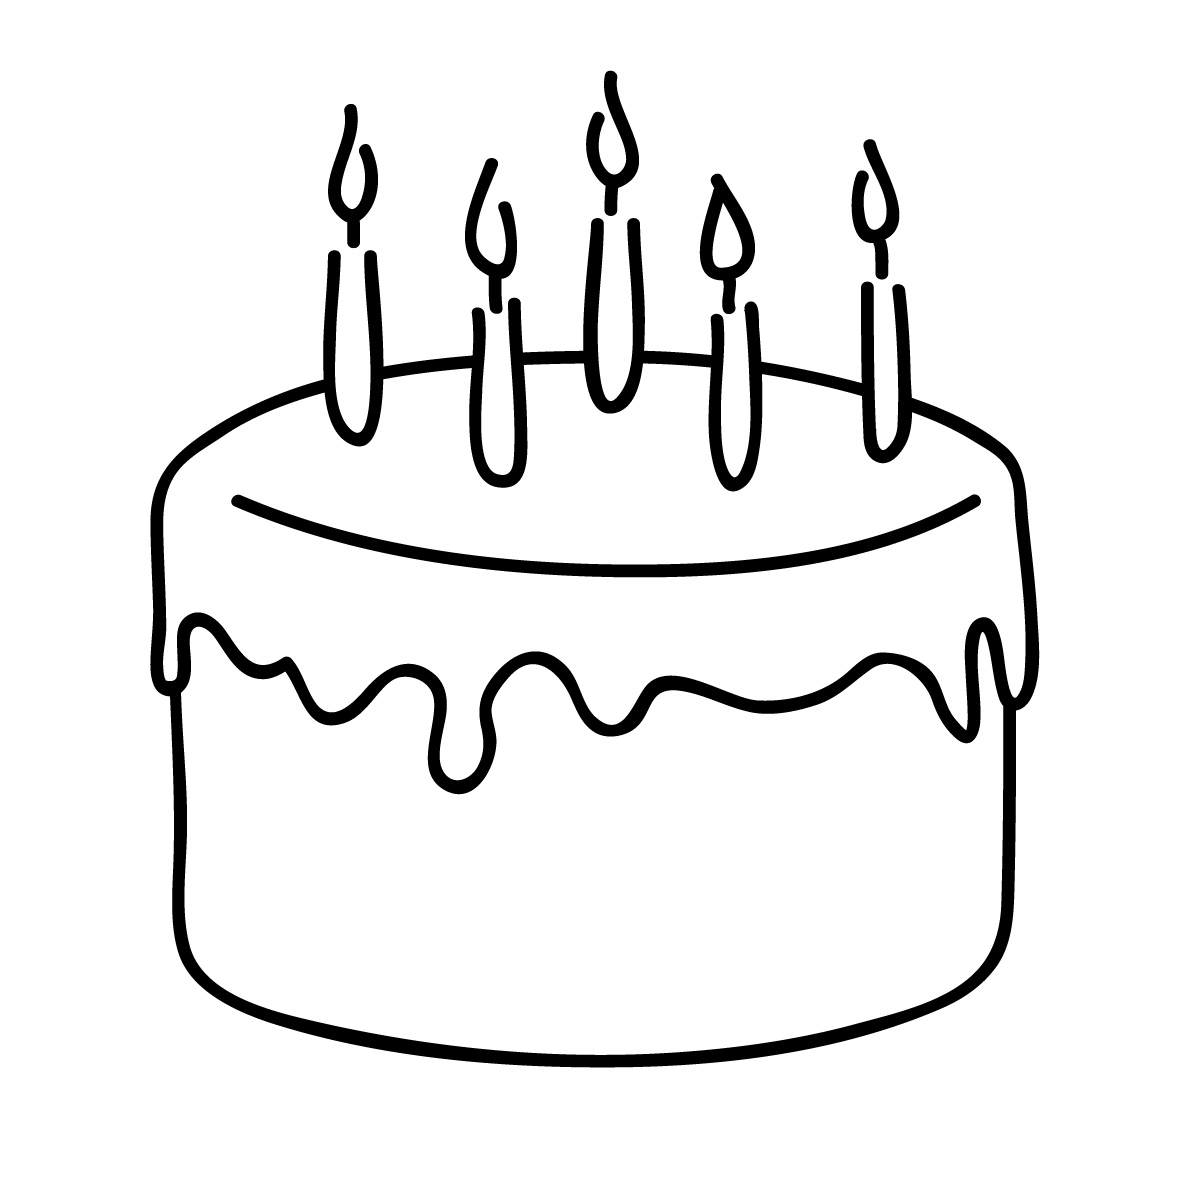 Cake outline clipart vector download Free Birthday Cake Clip Art | Clipart Panda - Free Clipart Images vector download